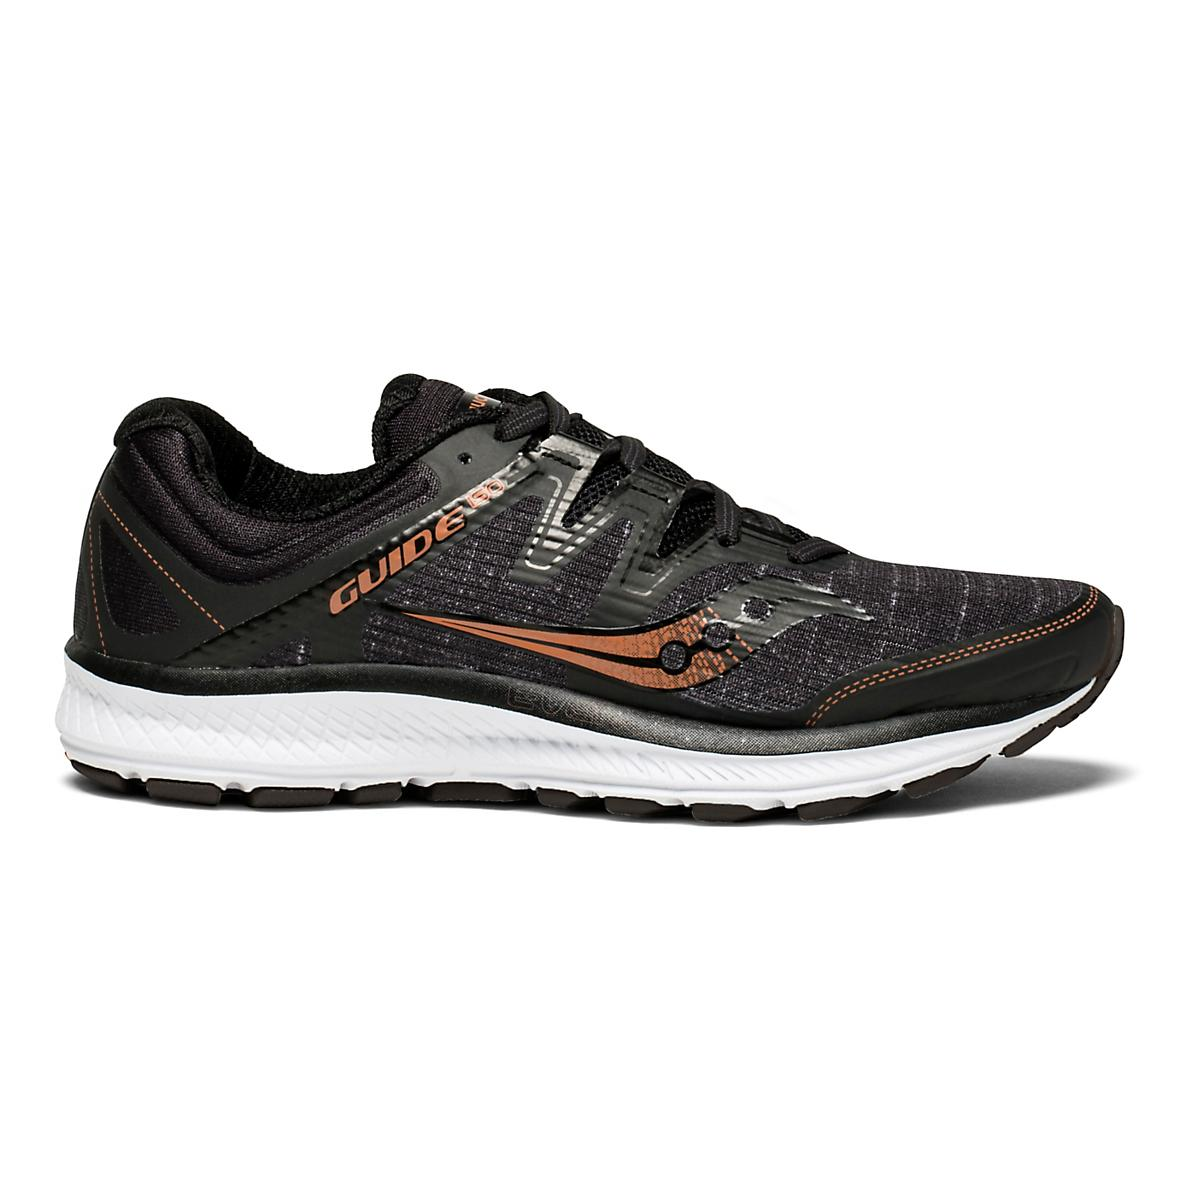 86223e25a2 Womens Saucony Guide ISO Running Shoe at Road Runner Sports